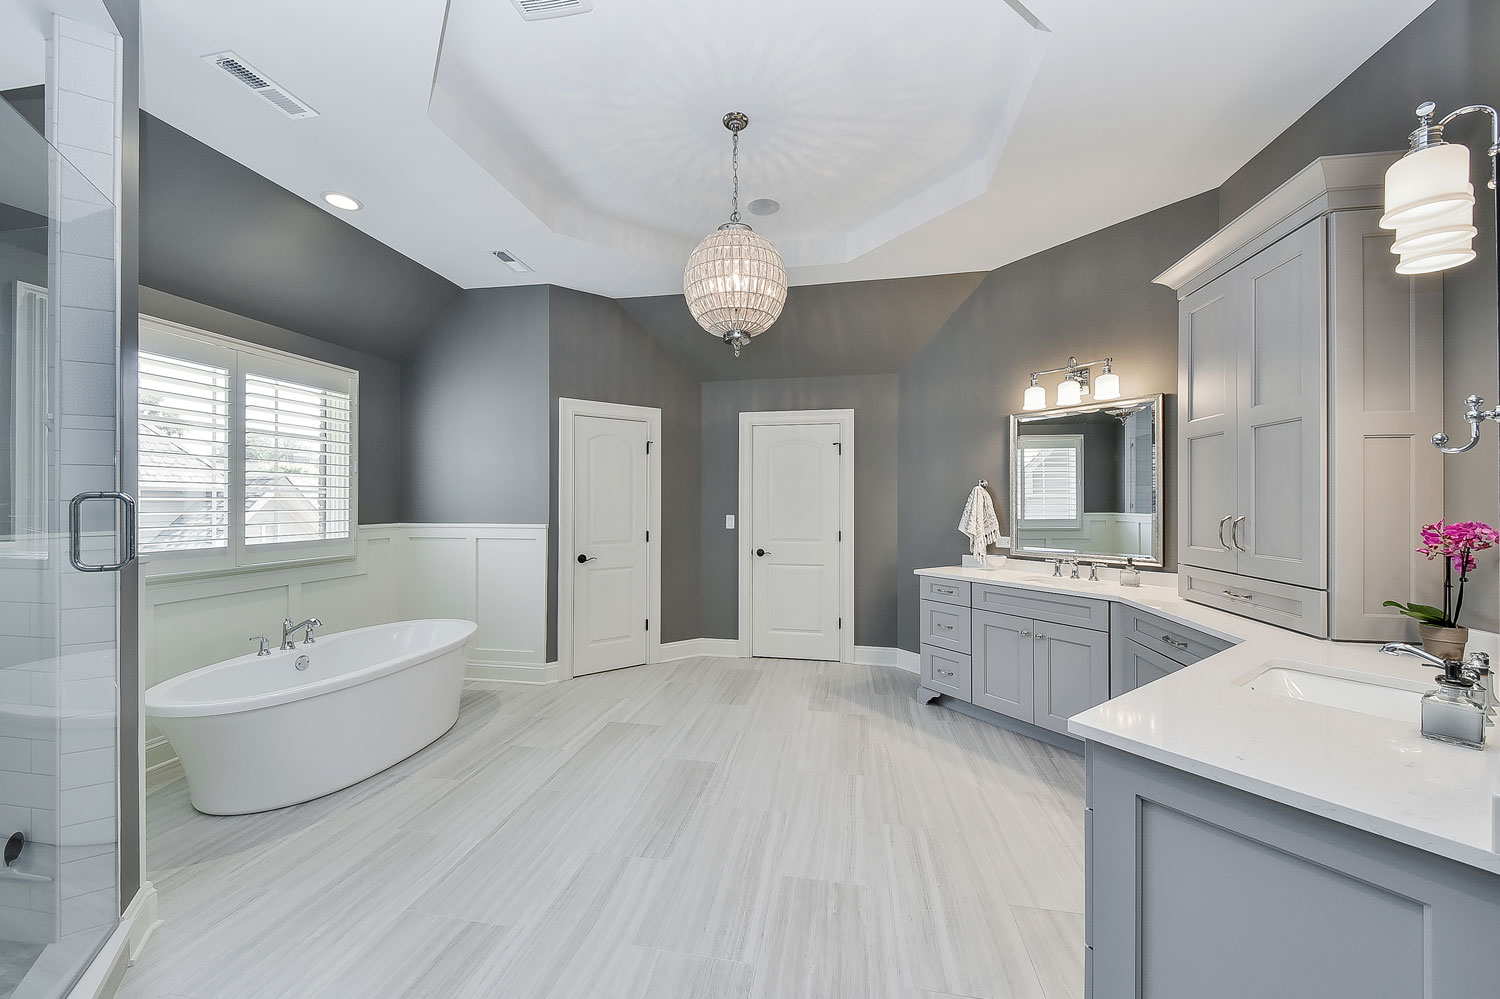 Rob michelle 39 s master bathroom remodel pictures home - White bathroom ideas photo gallery ...